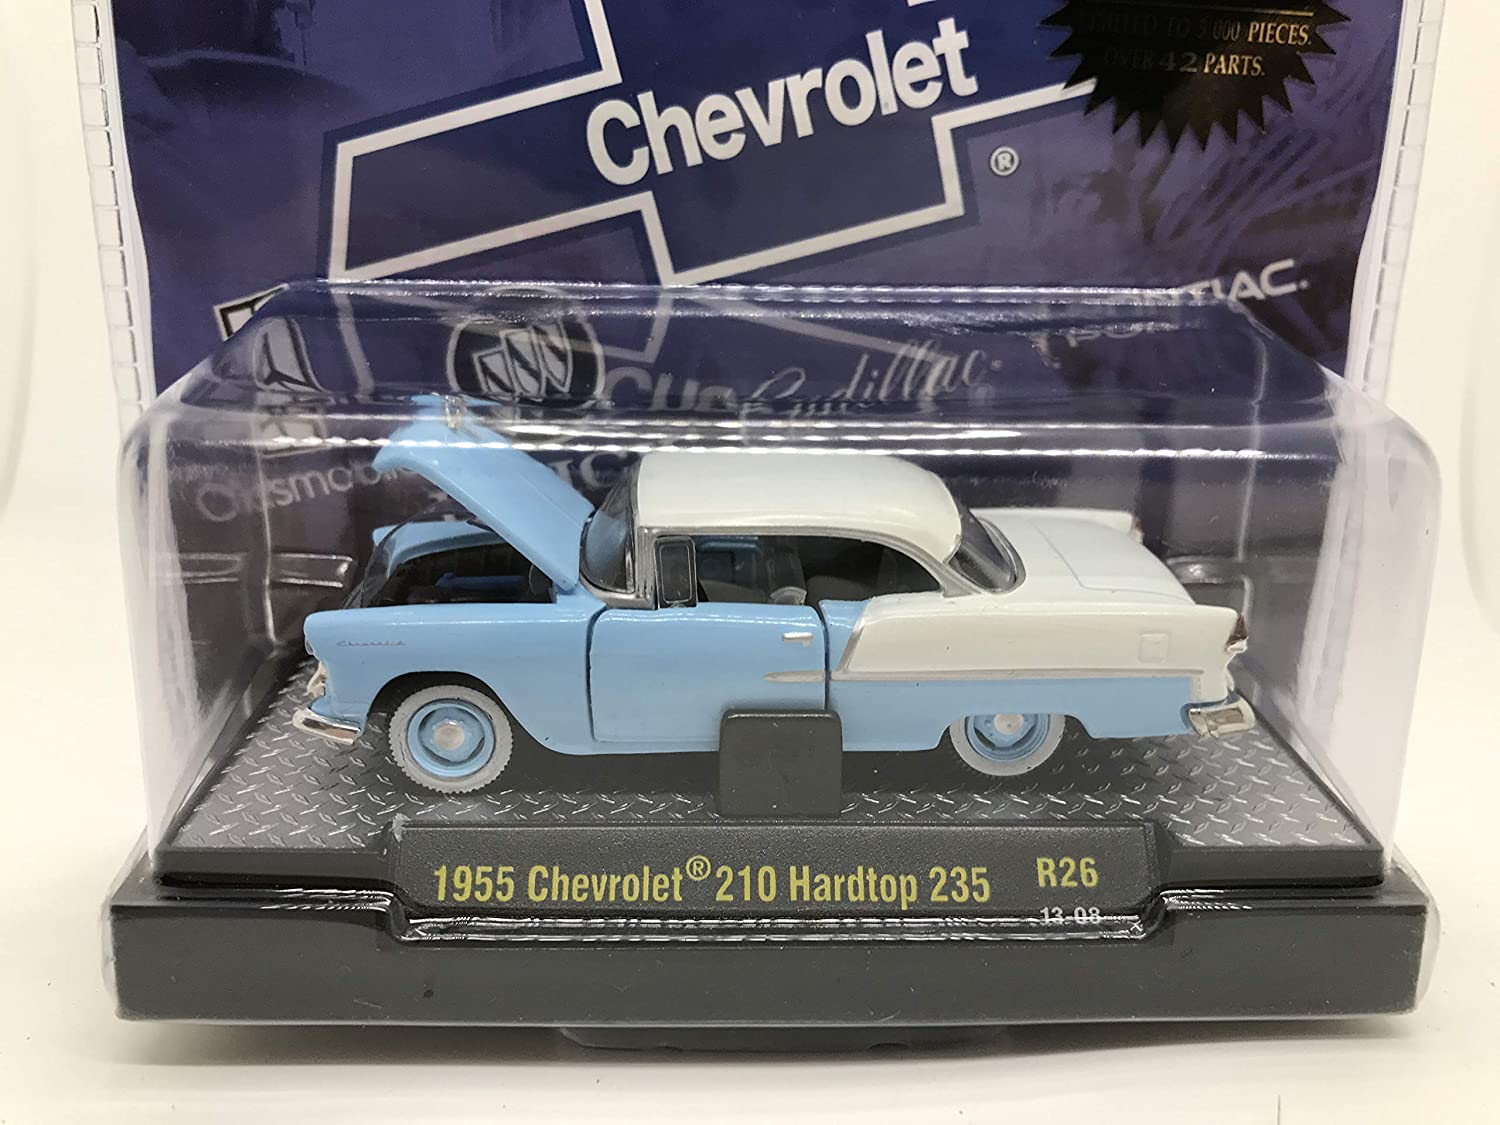 M2 Machines by M2 Collectible Auto-Thentics 1955 Chevy 210 Hardtop 235 1:64 Scale R26 13-08 Blue/White Details Like NO Other! 1 of 5000